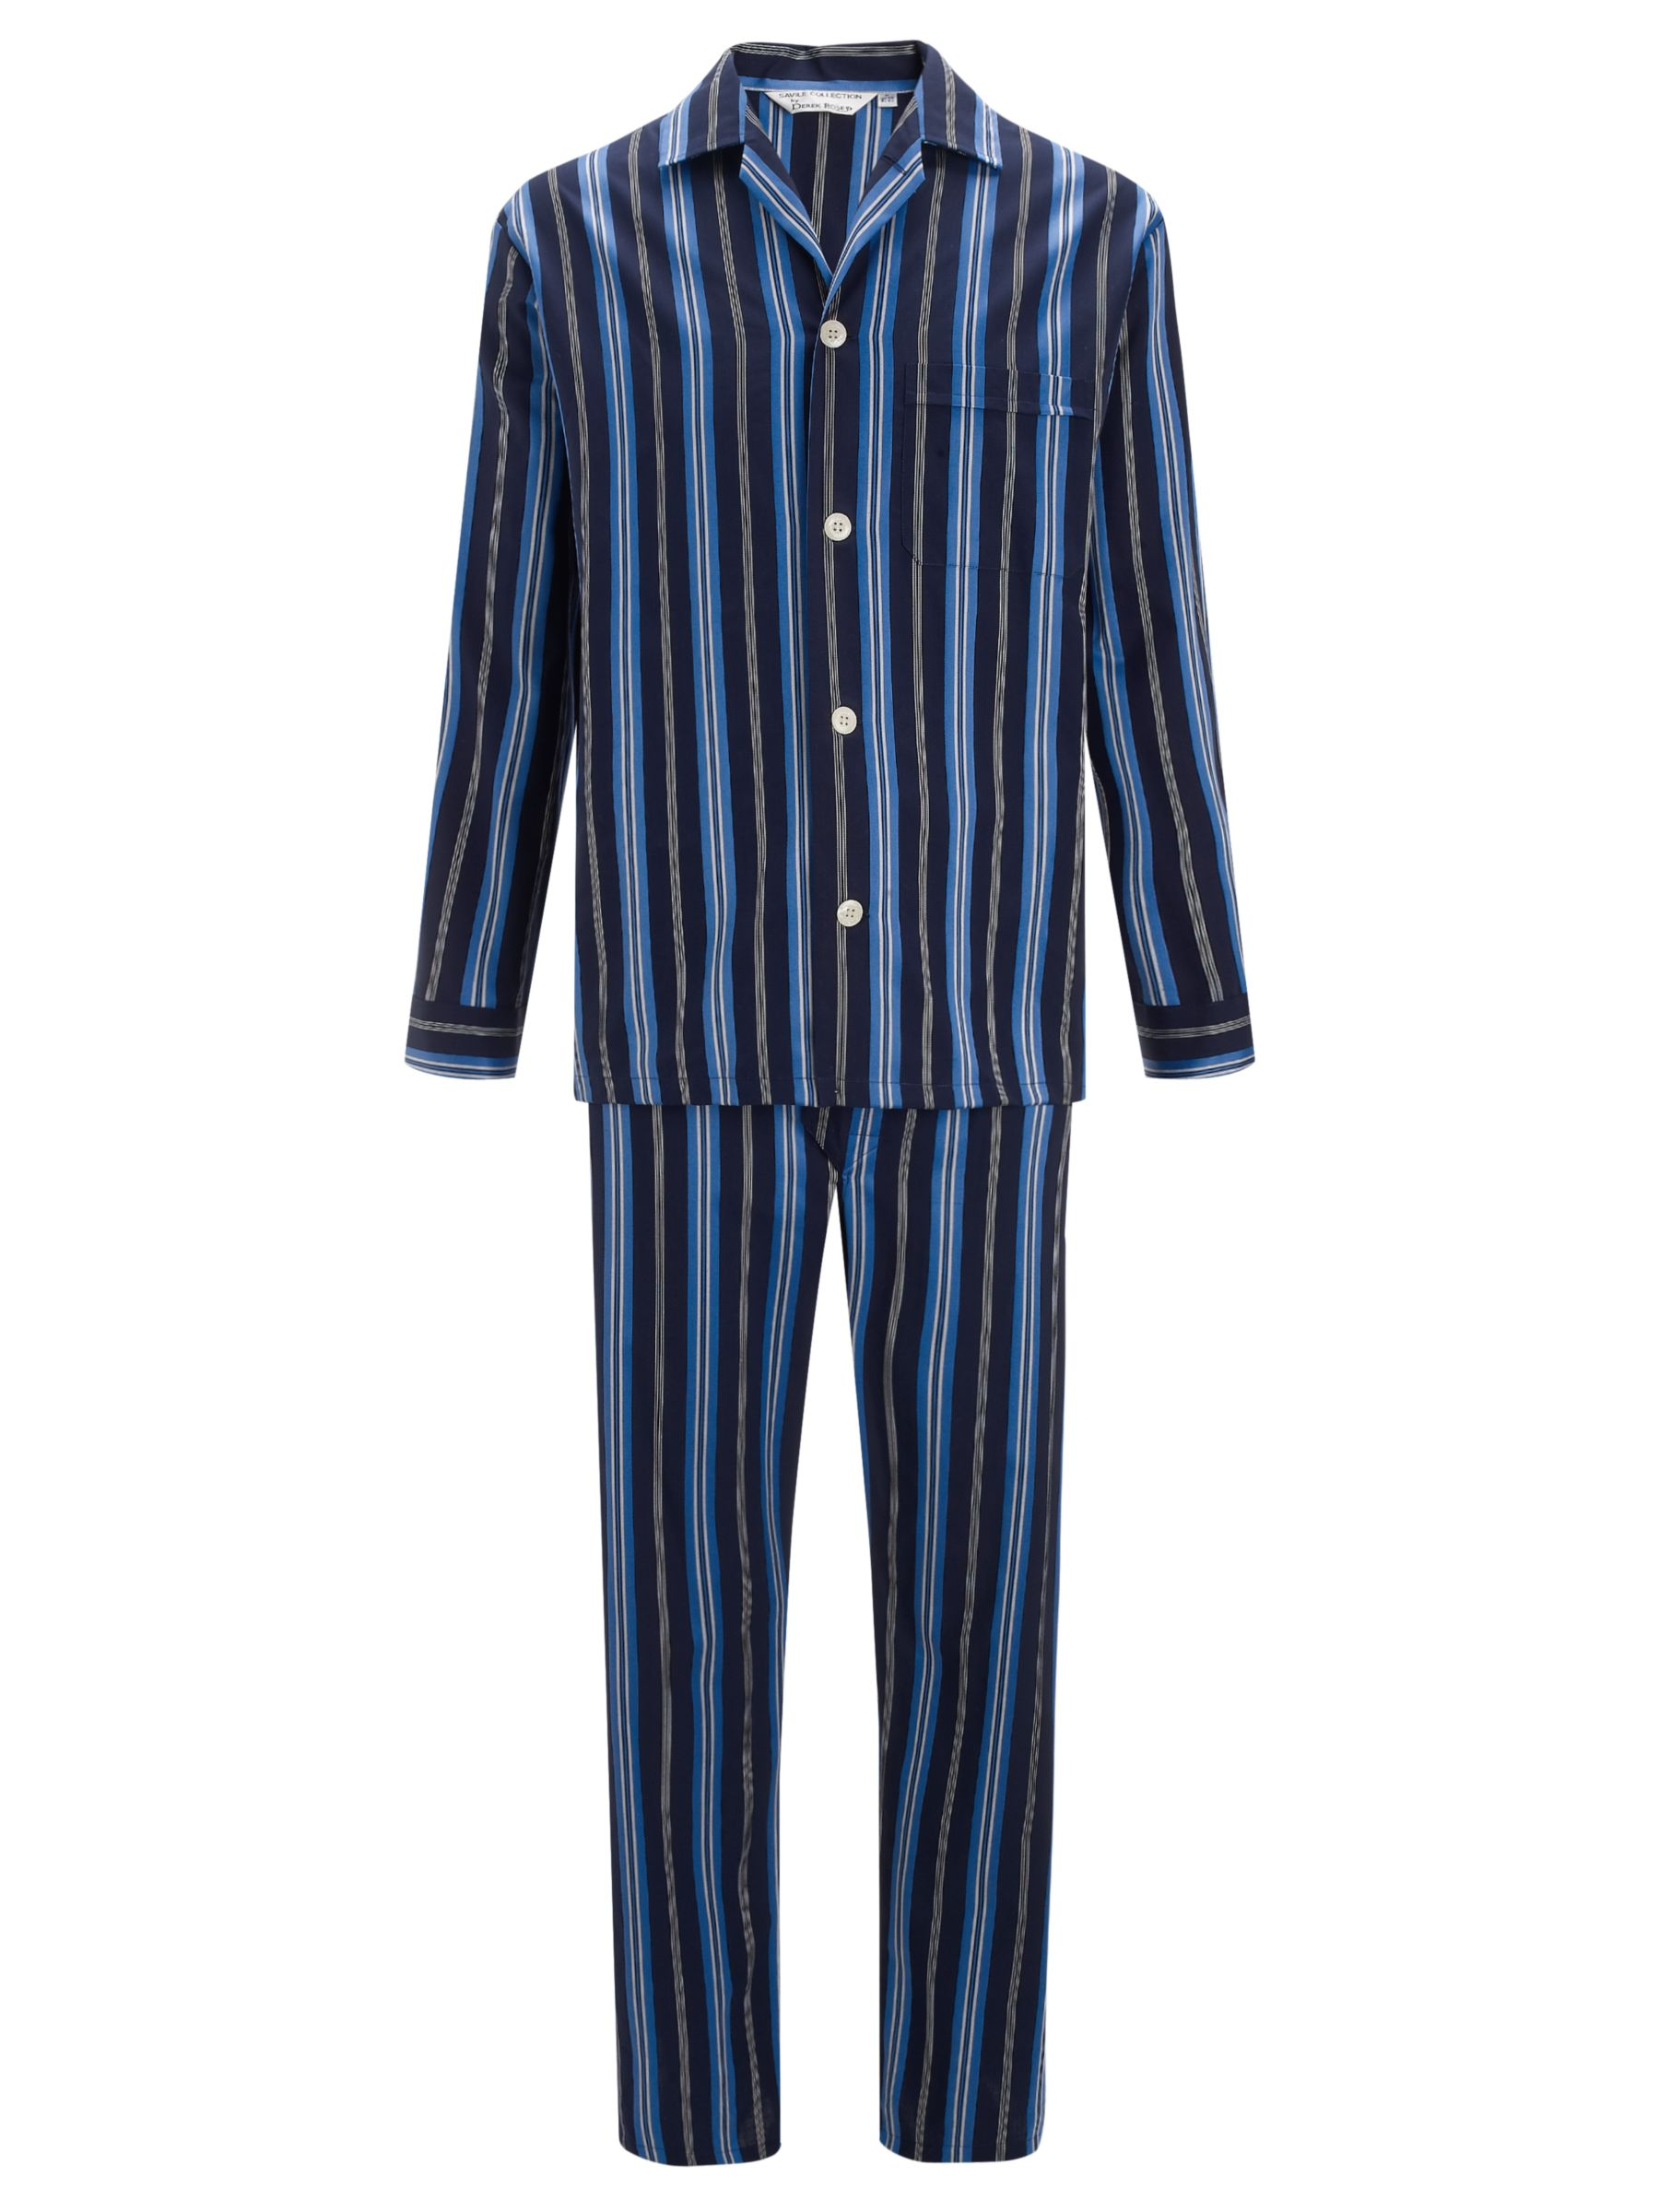 Derek Rose Savile Row Satin Stripe Cotton Pyjamas